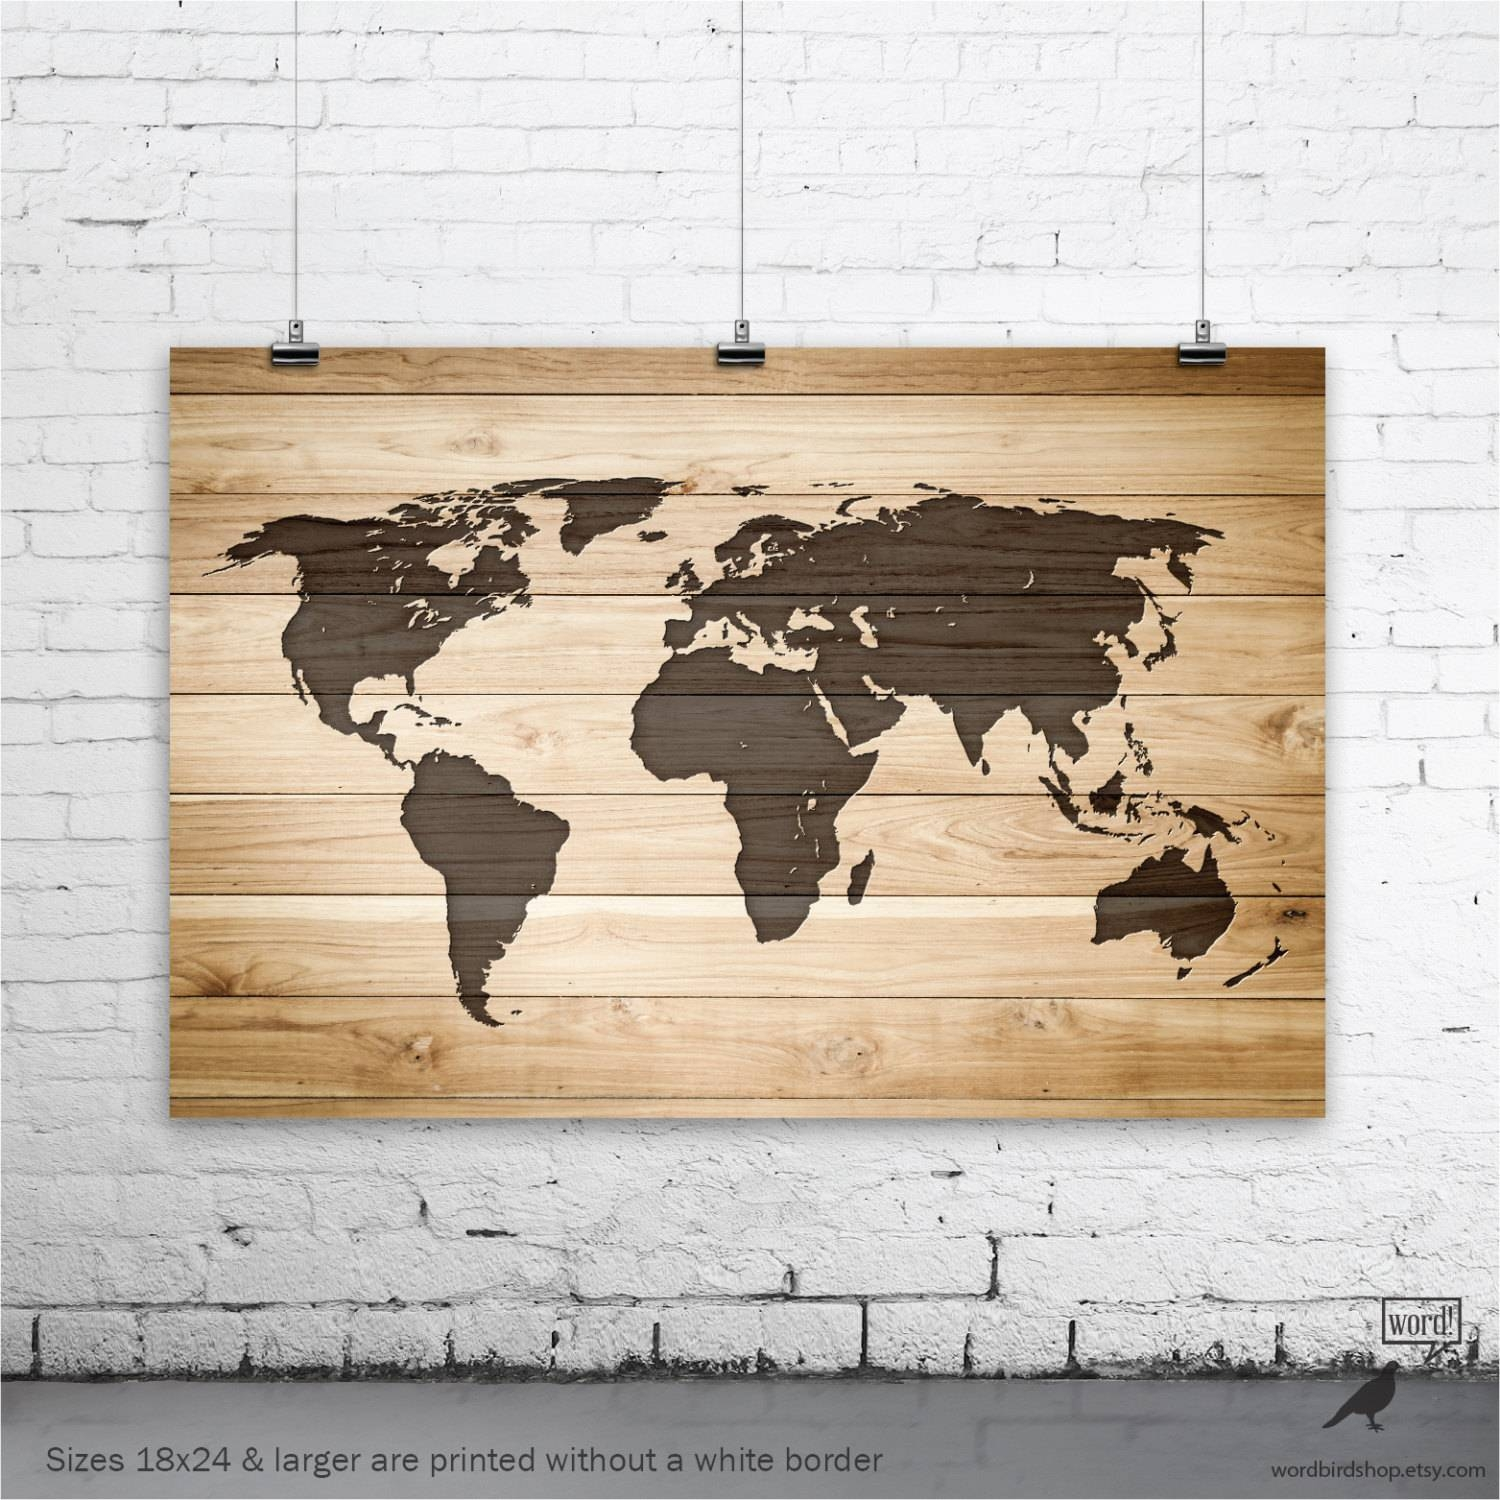 Rustic Wood Large World Map Poster Wood Wall Art Print Gifts Within Best And Newest World Map Wood Wall Art (View 13 of 20)